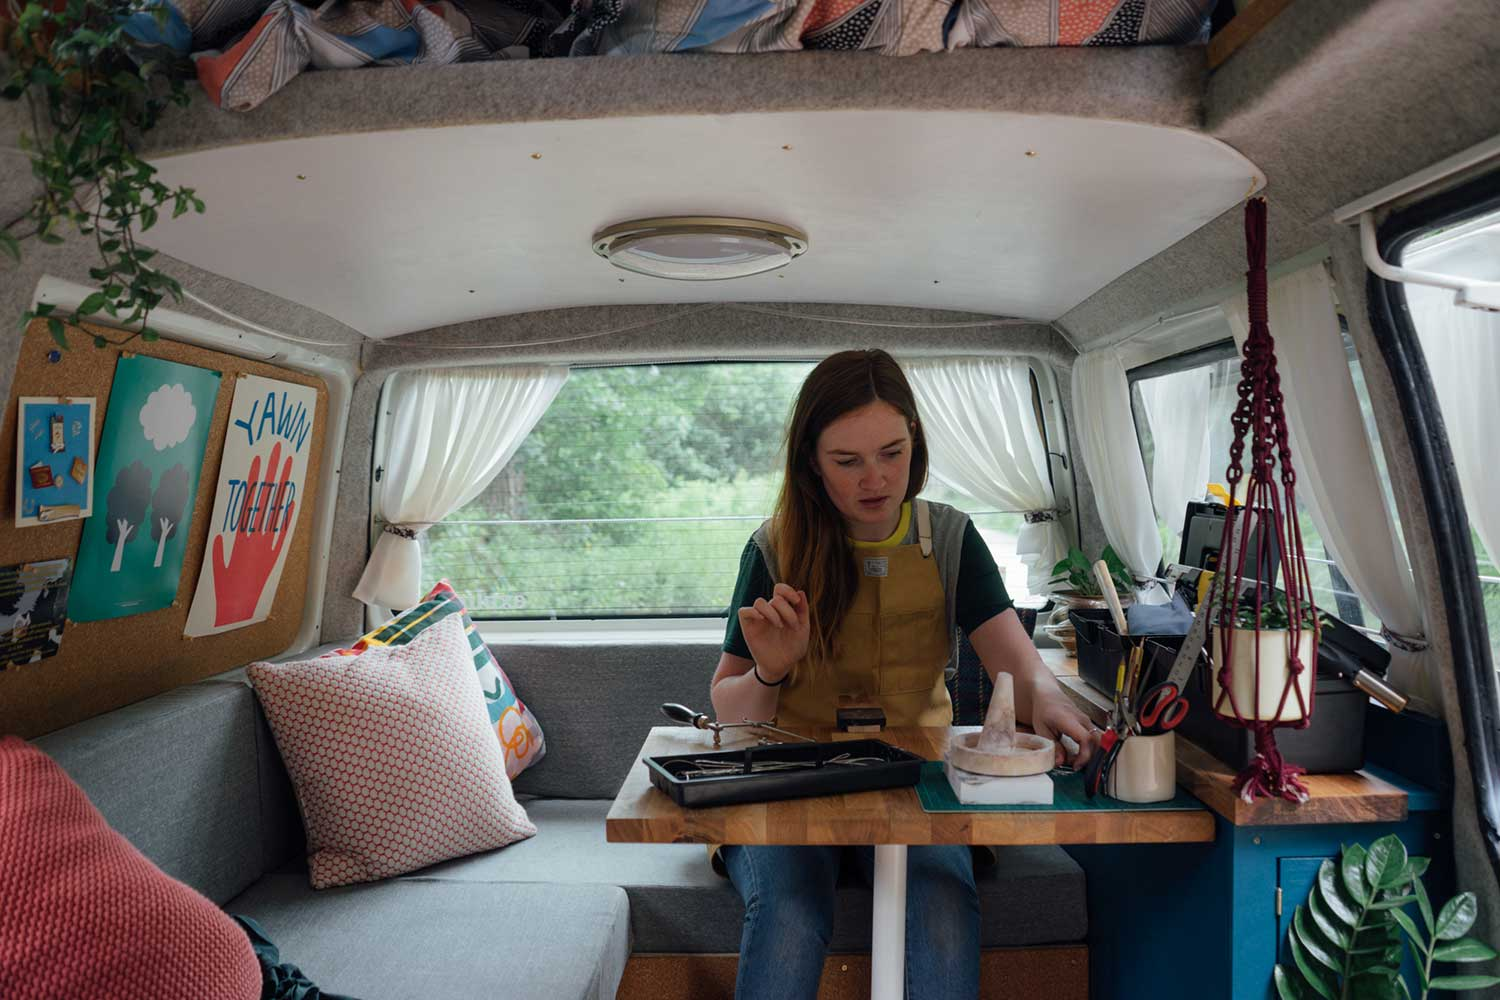 Jewellery making set-up in the back of the campervan